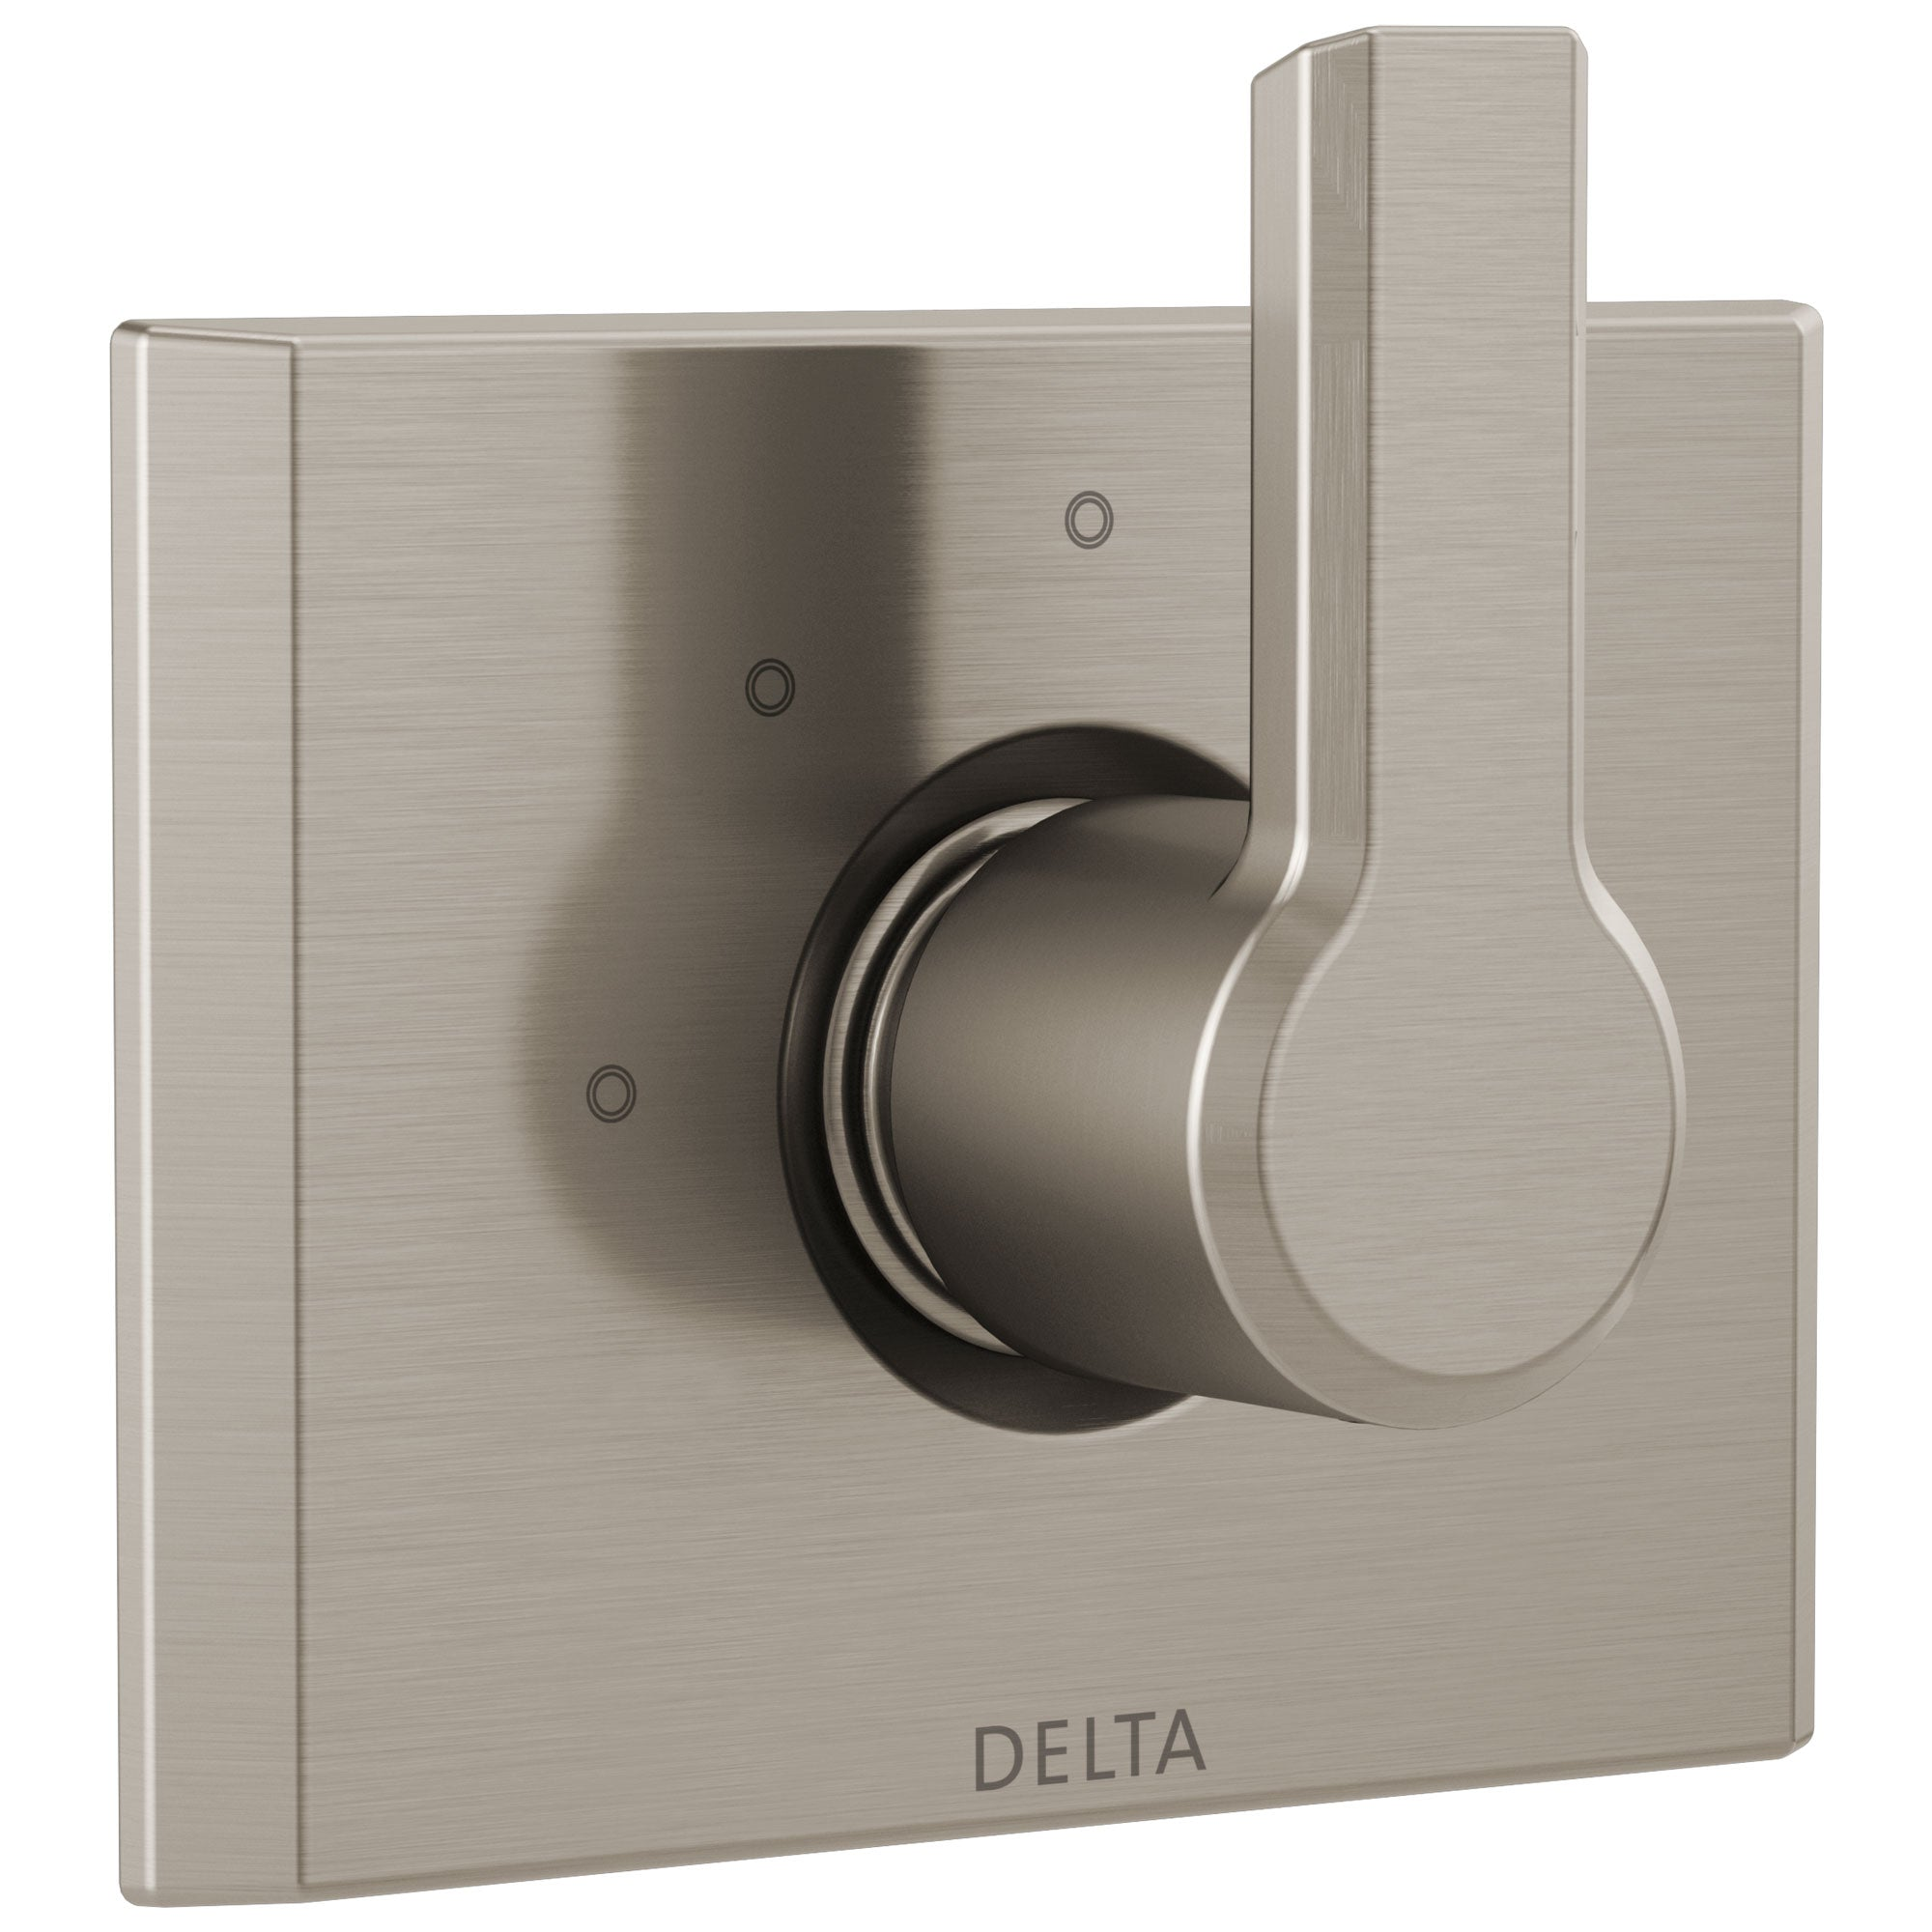 Delta Pivotal Stainless Steel Finish 3-Setting 2-Port Shower Diverter Trim Kit (Requires Valve) DT11899SS